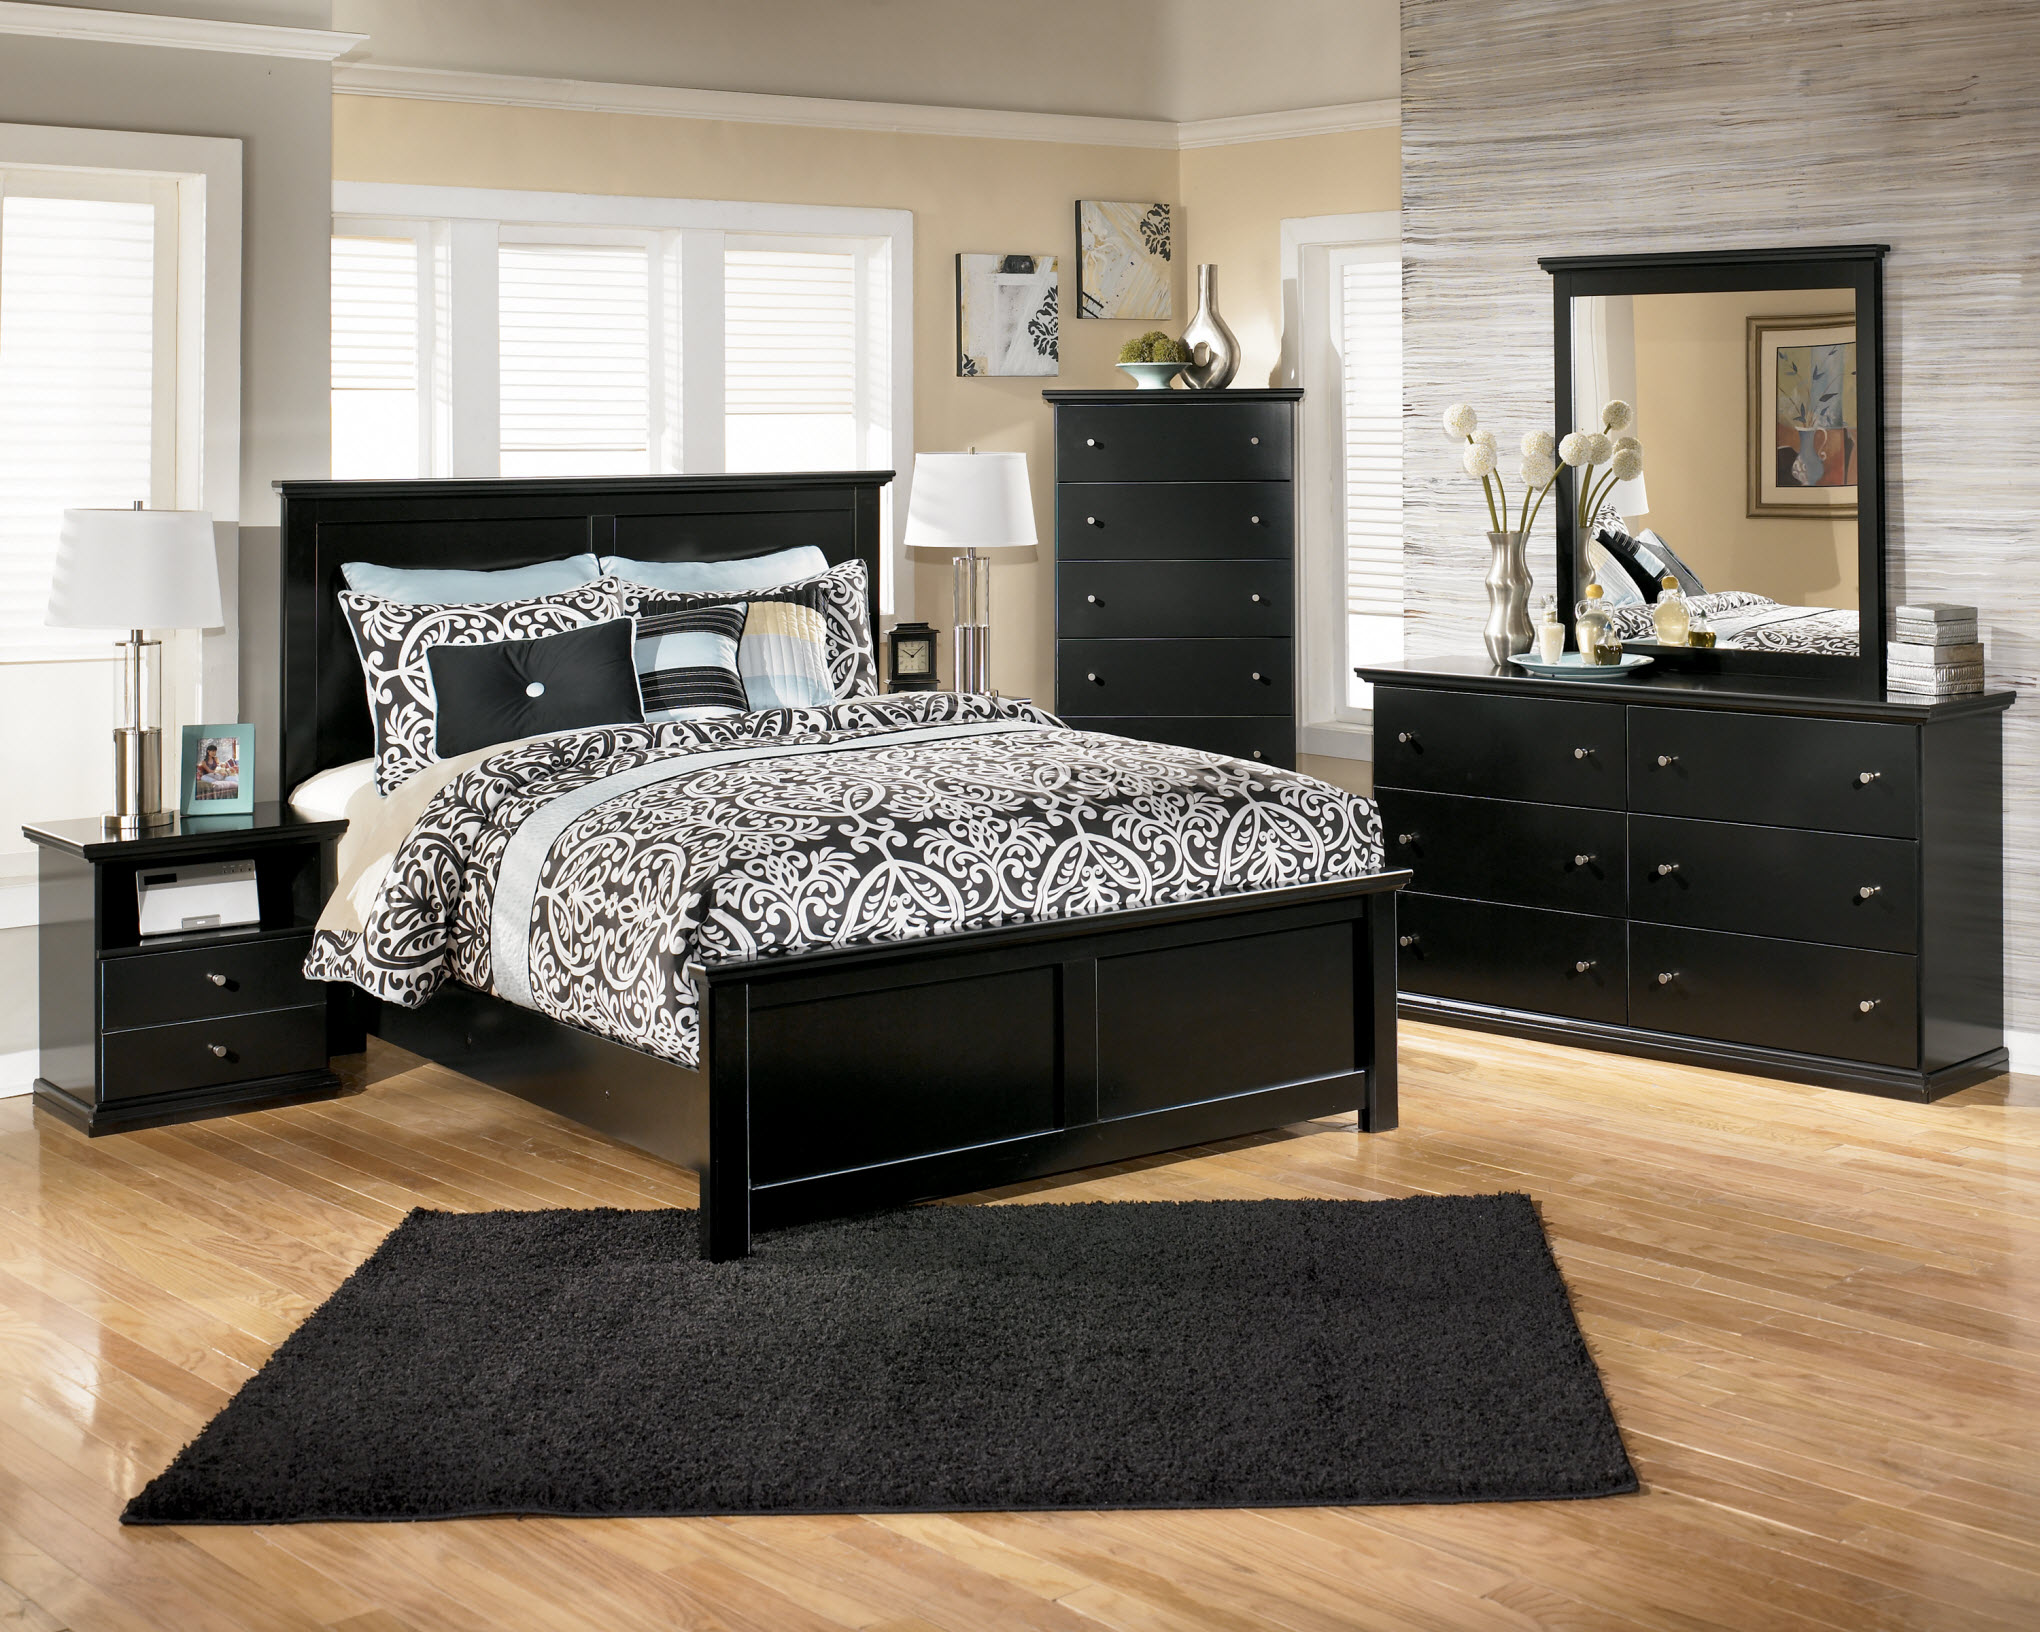 Classic black bedroom furniture sets with a picture of the black bedroom conversion DHRKBNN